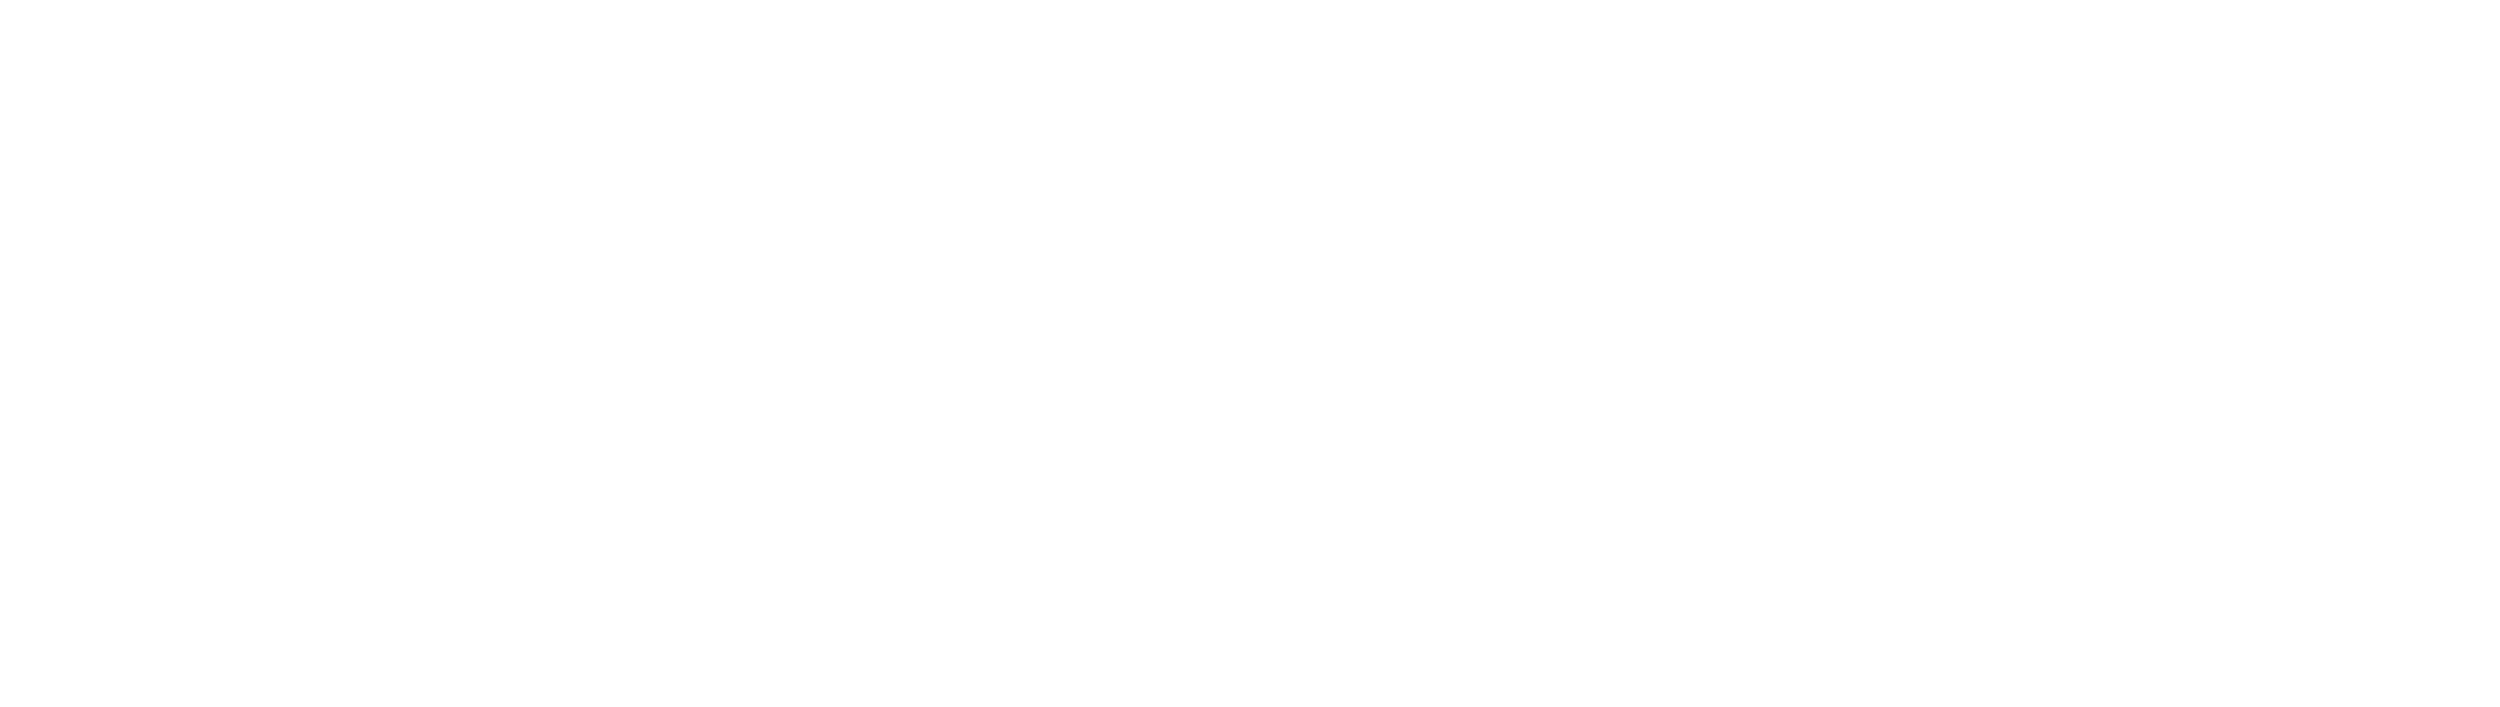 coutureAGENCYlogowhite.png